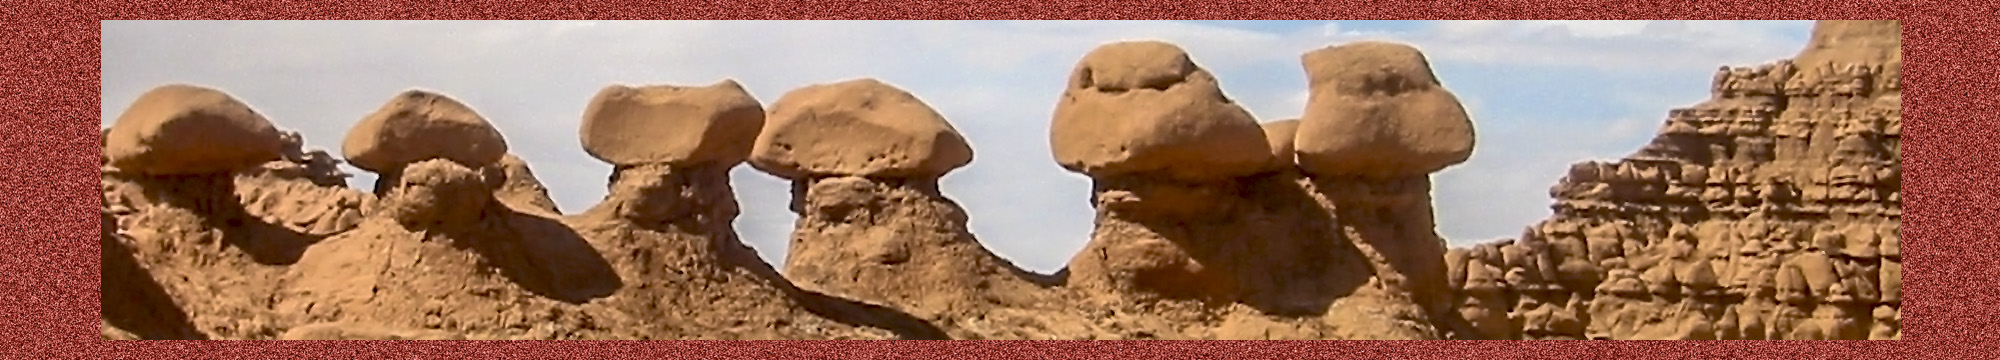 goblin-valley-054-f